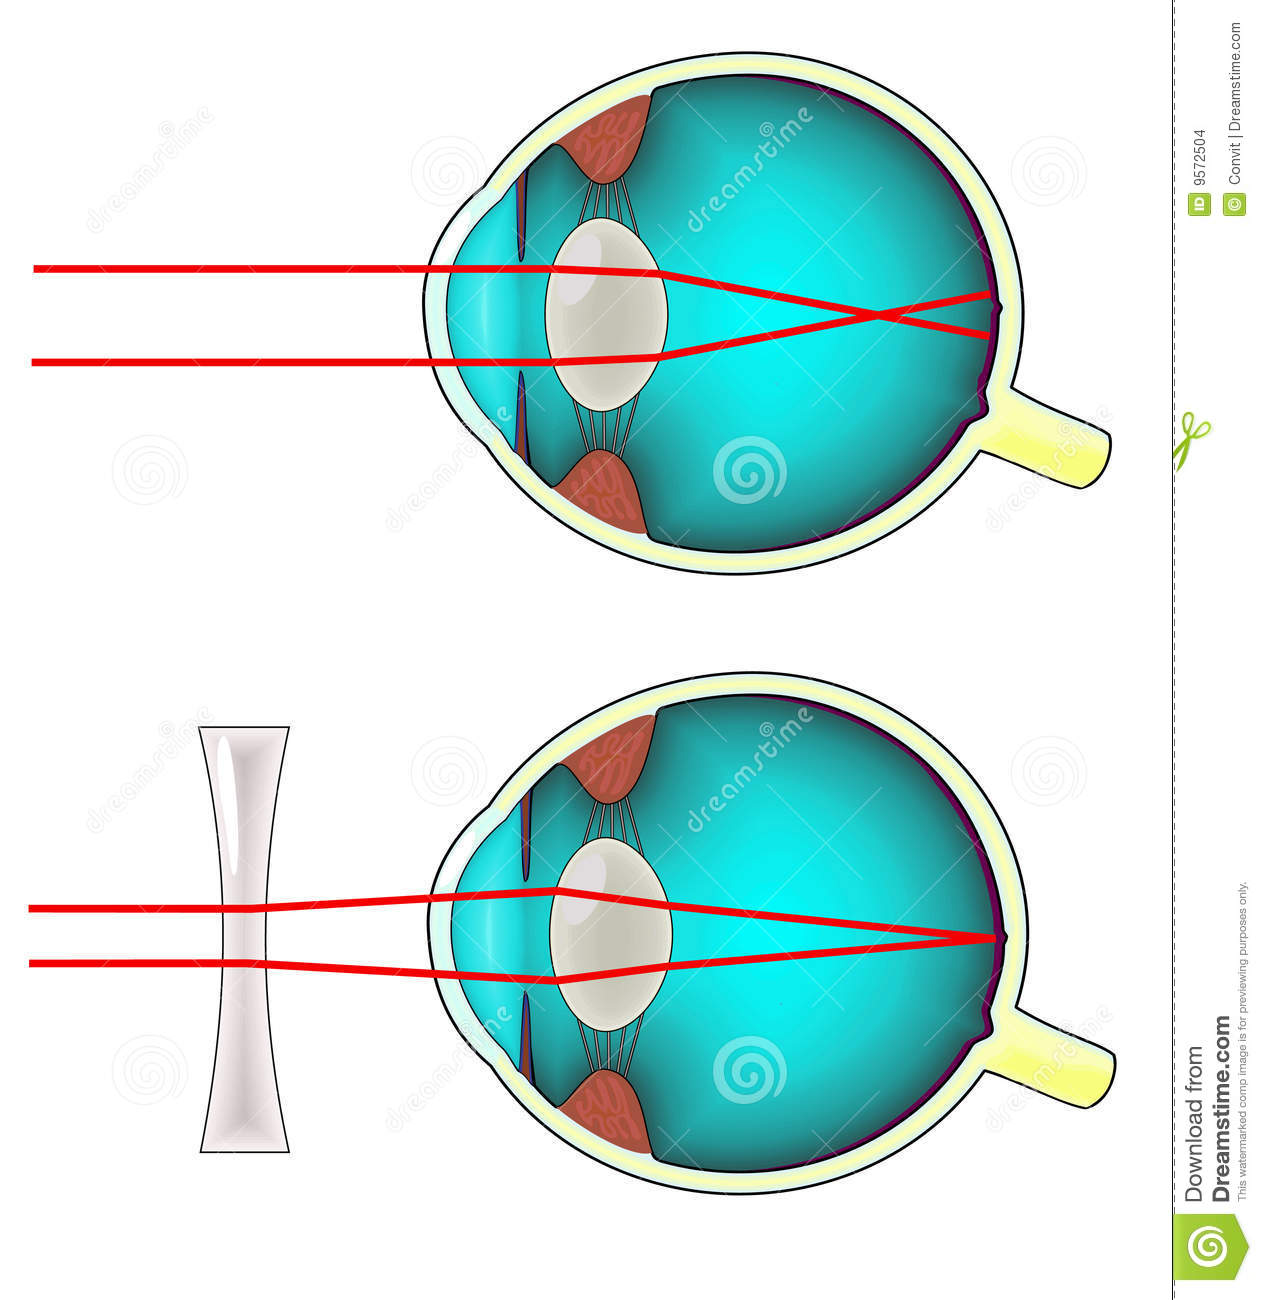 hight resolution of diagram of a shortsighted human eye corrected with a concave lens